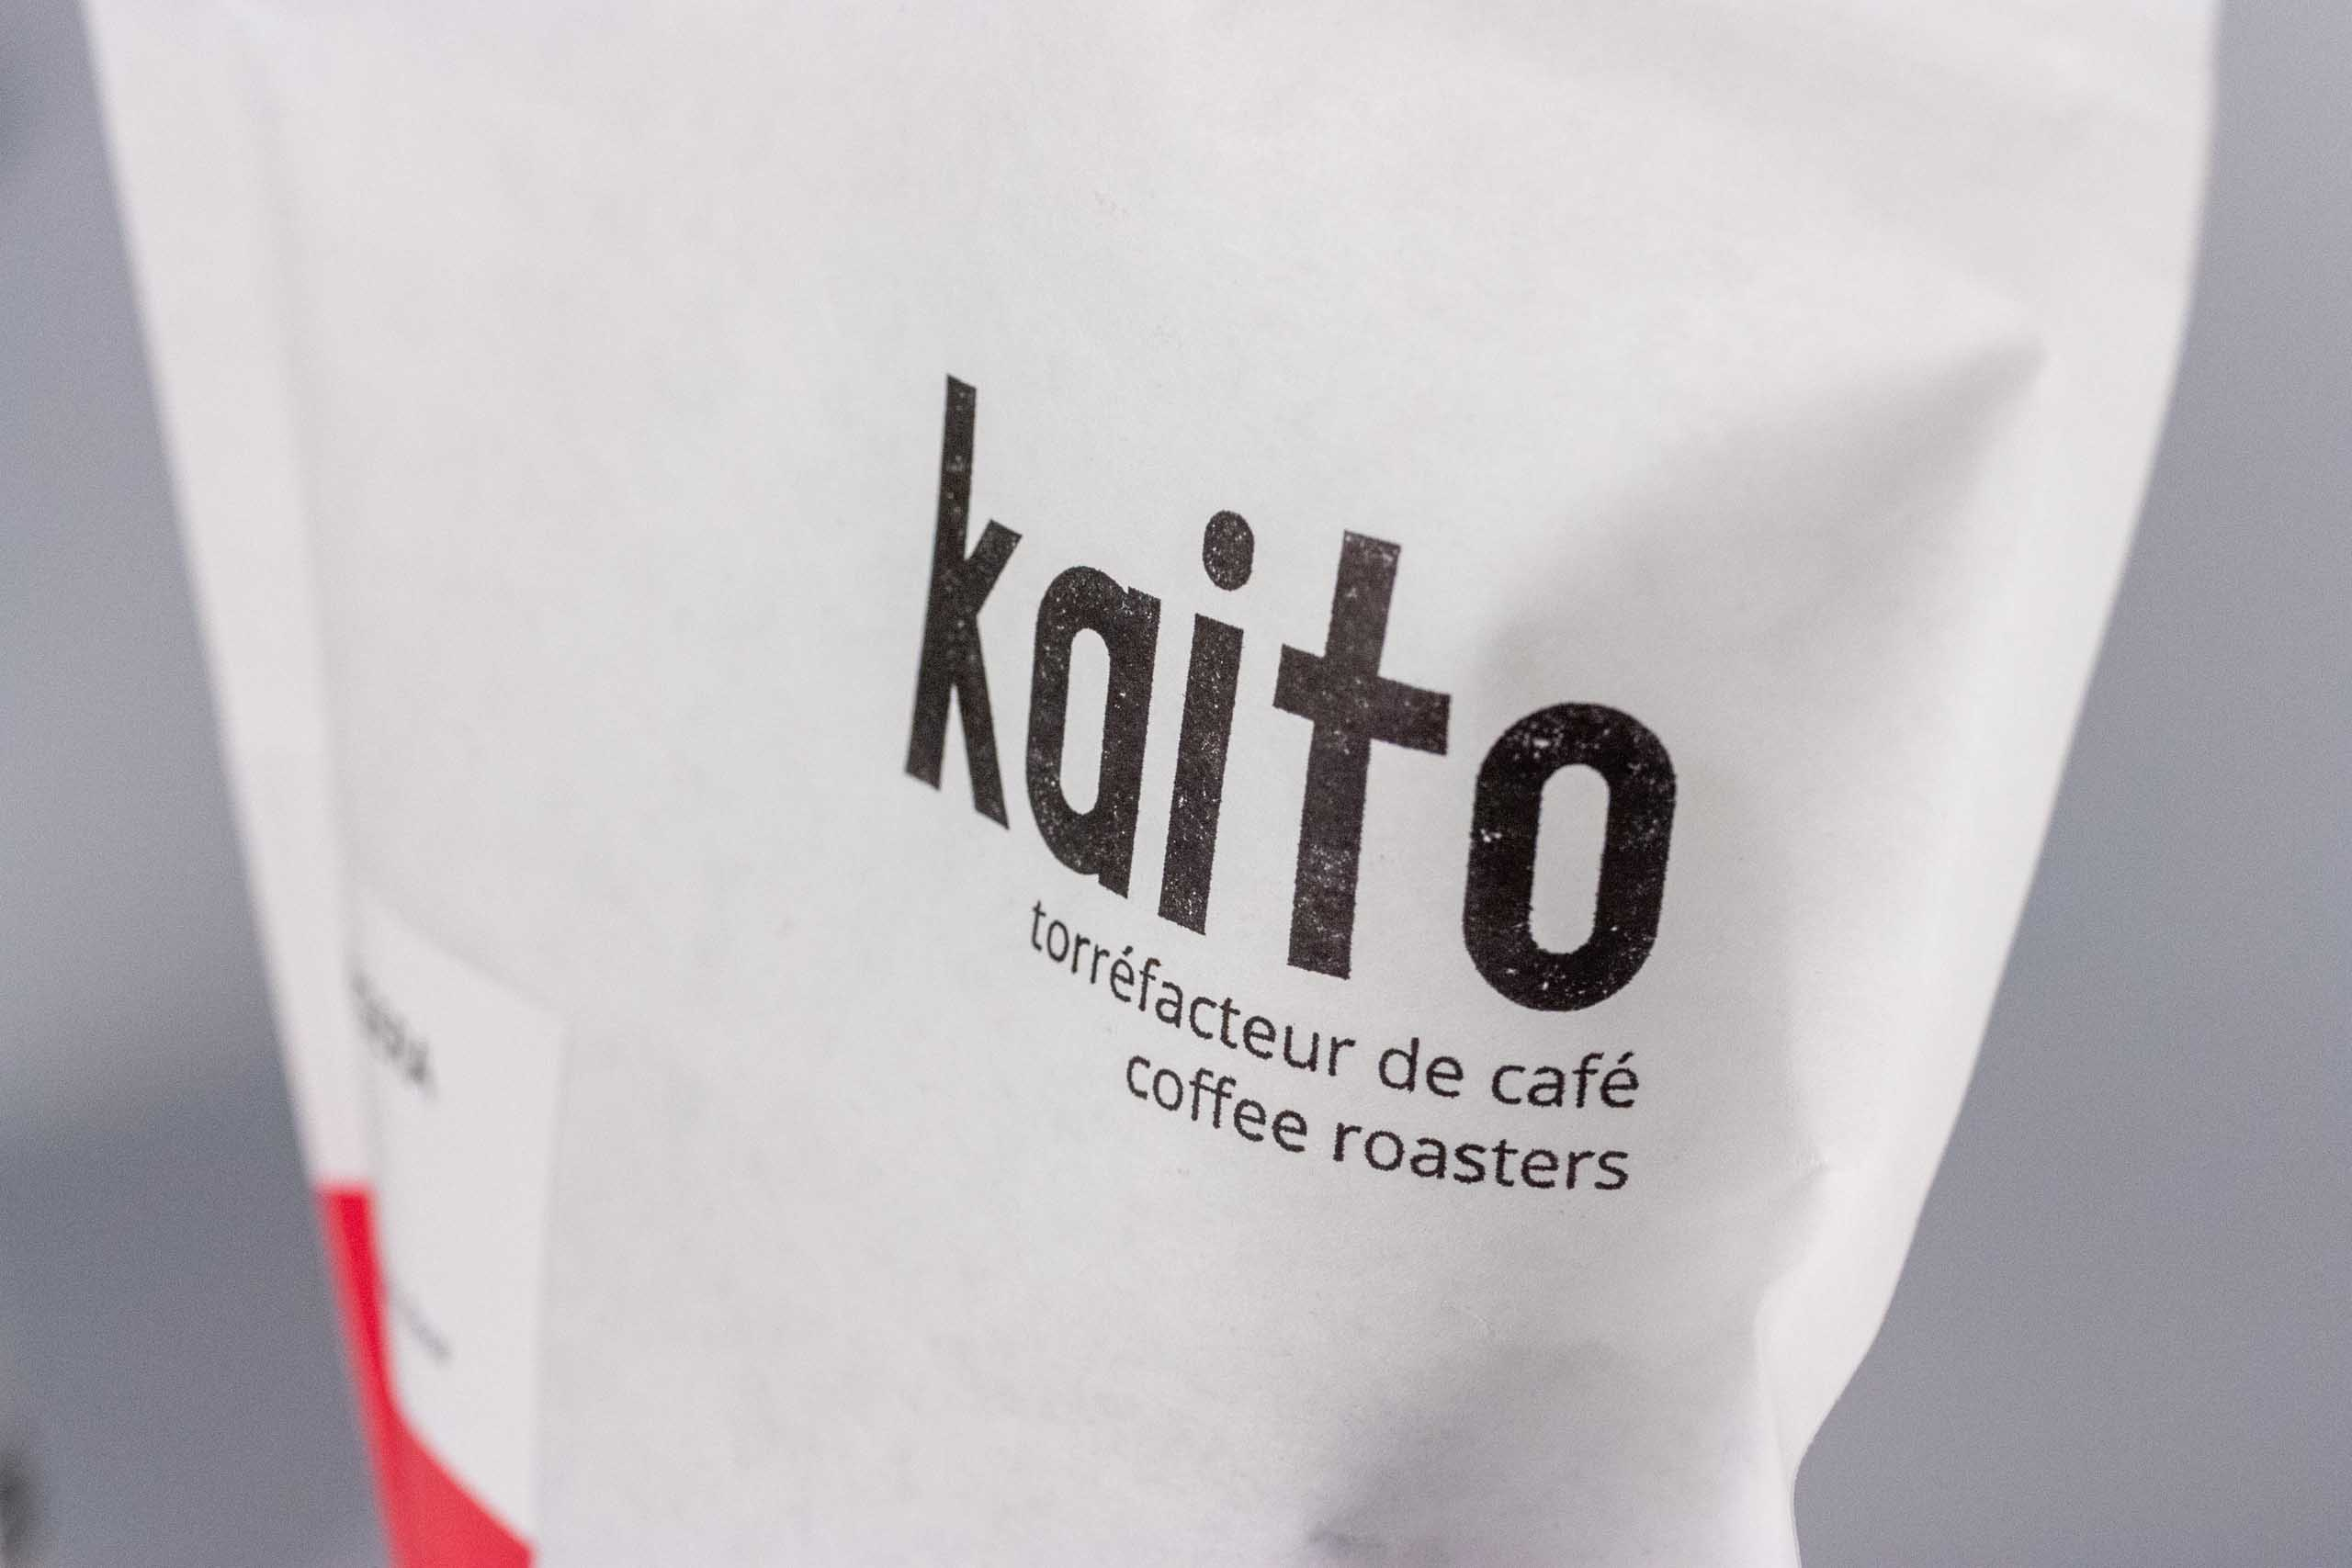 Close up of the Kaito Coffee logo on the coffee bag.